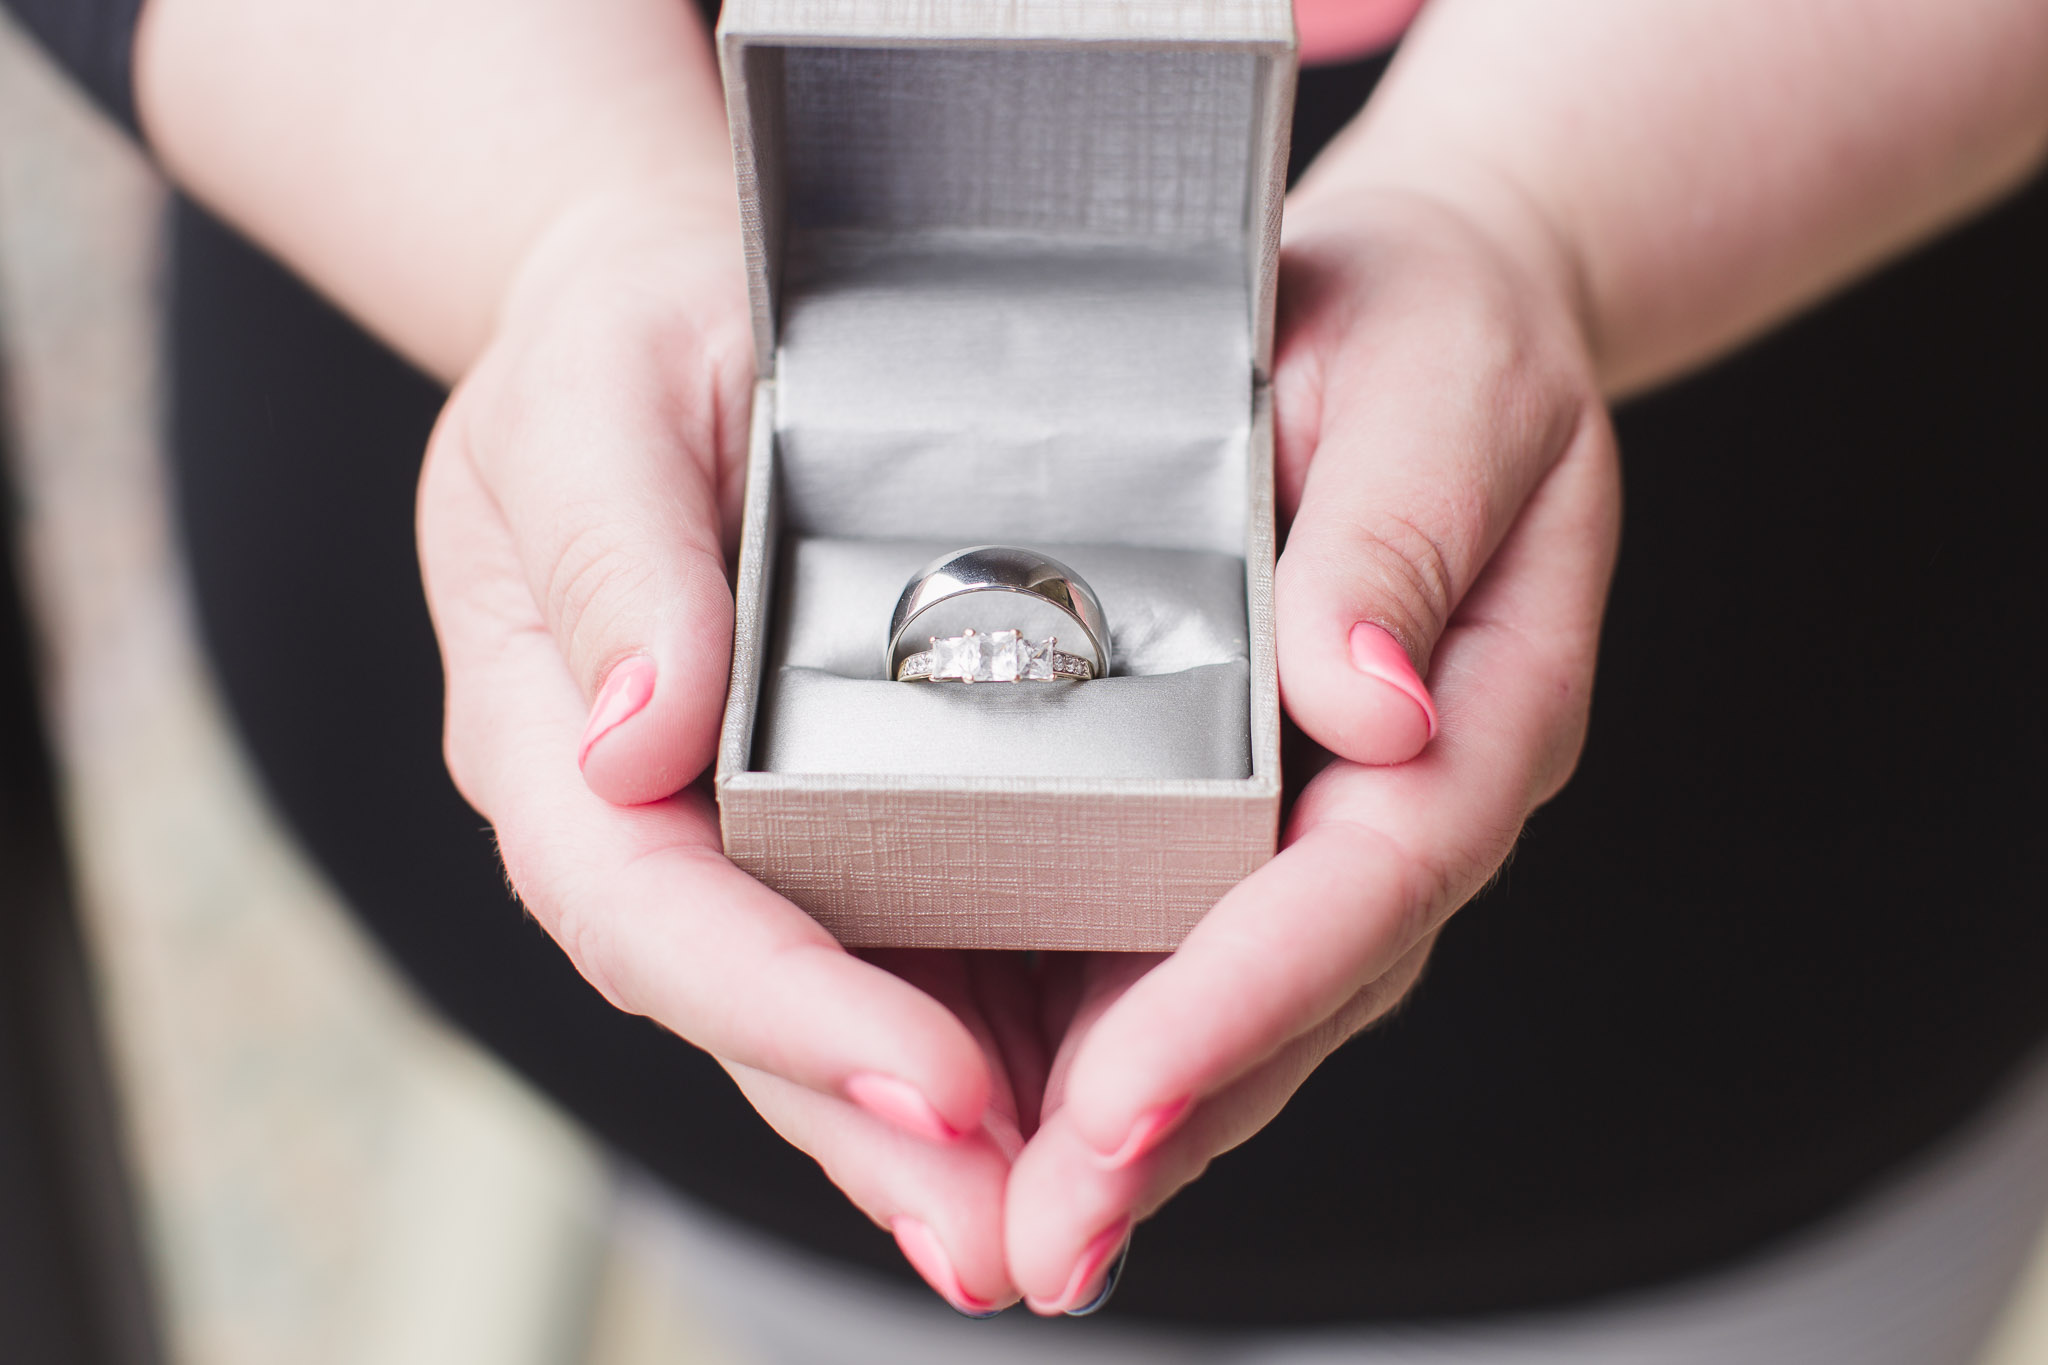 Image of hands holding a box with wedding bands